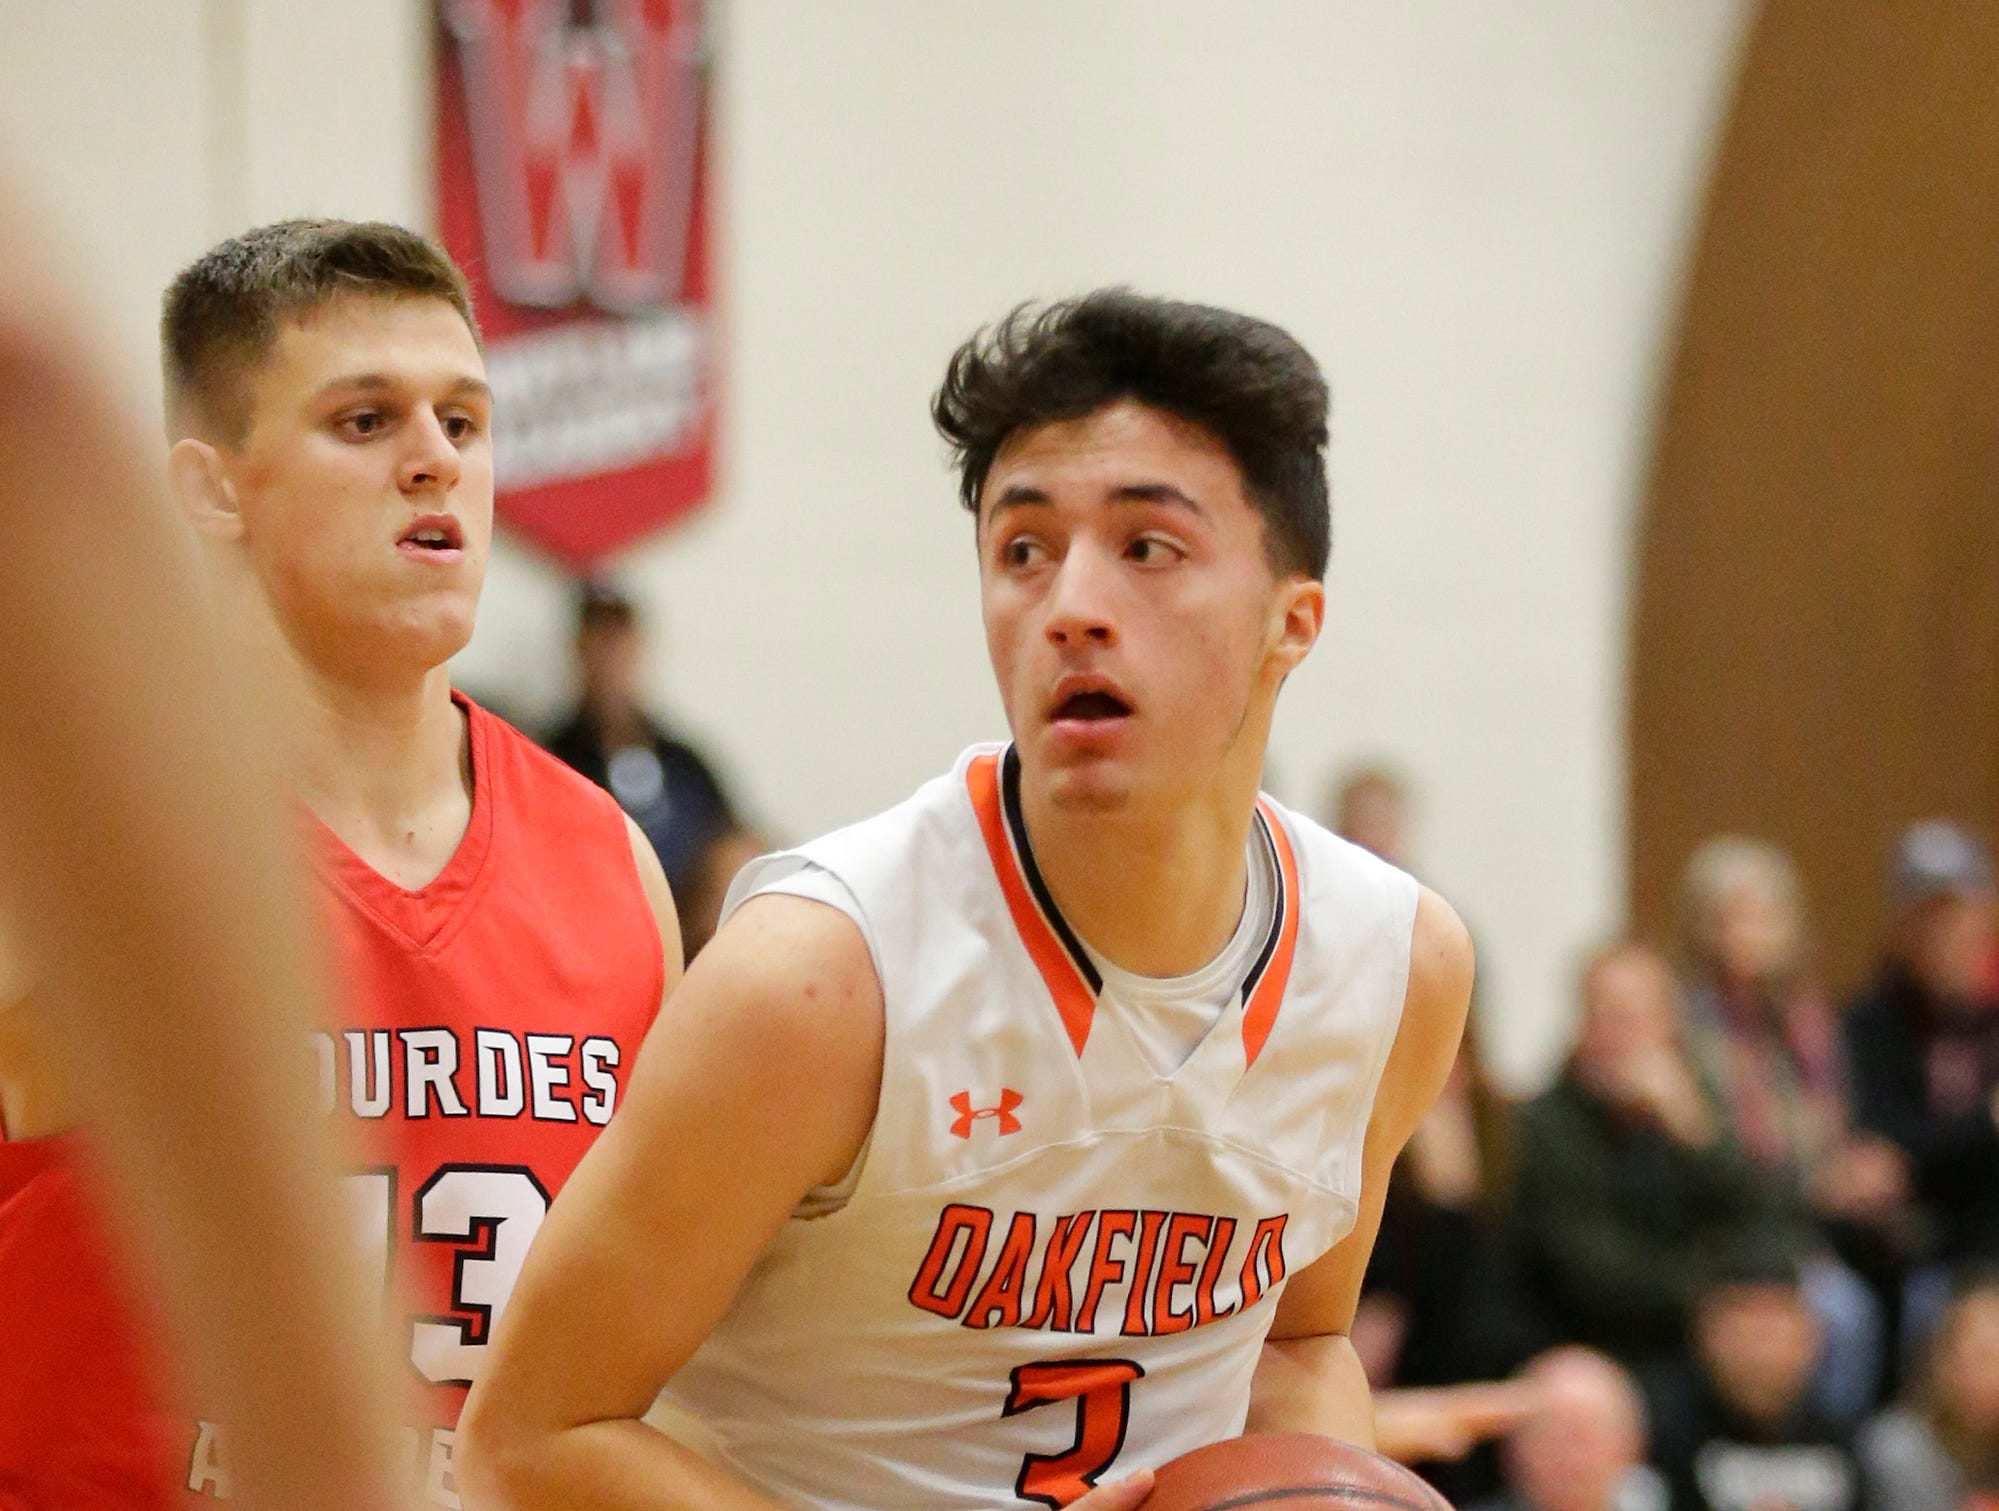 Oakfield High School boys basketball's Jacob Cedar looks for a player to pass to against Lourdes Academy of Oshkosh during their game Thursday, January 24, 2019 in Oakfield. Lourdes Academy won the game 83-48. Doug Raflik/USA TODAY NETWORK-Wisconsin